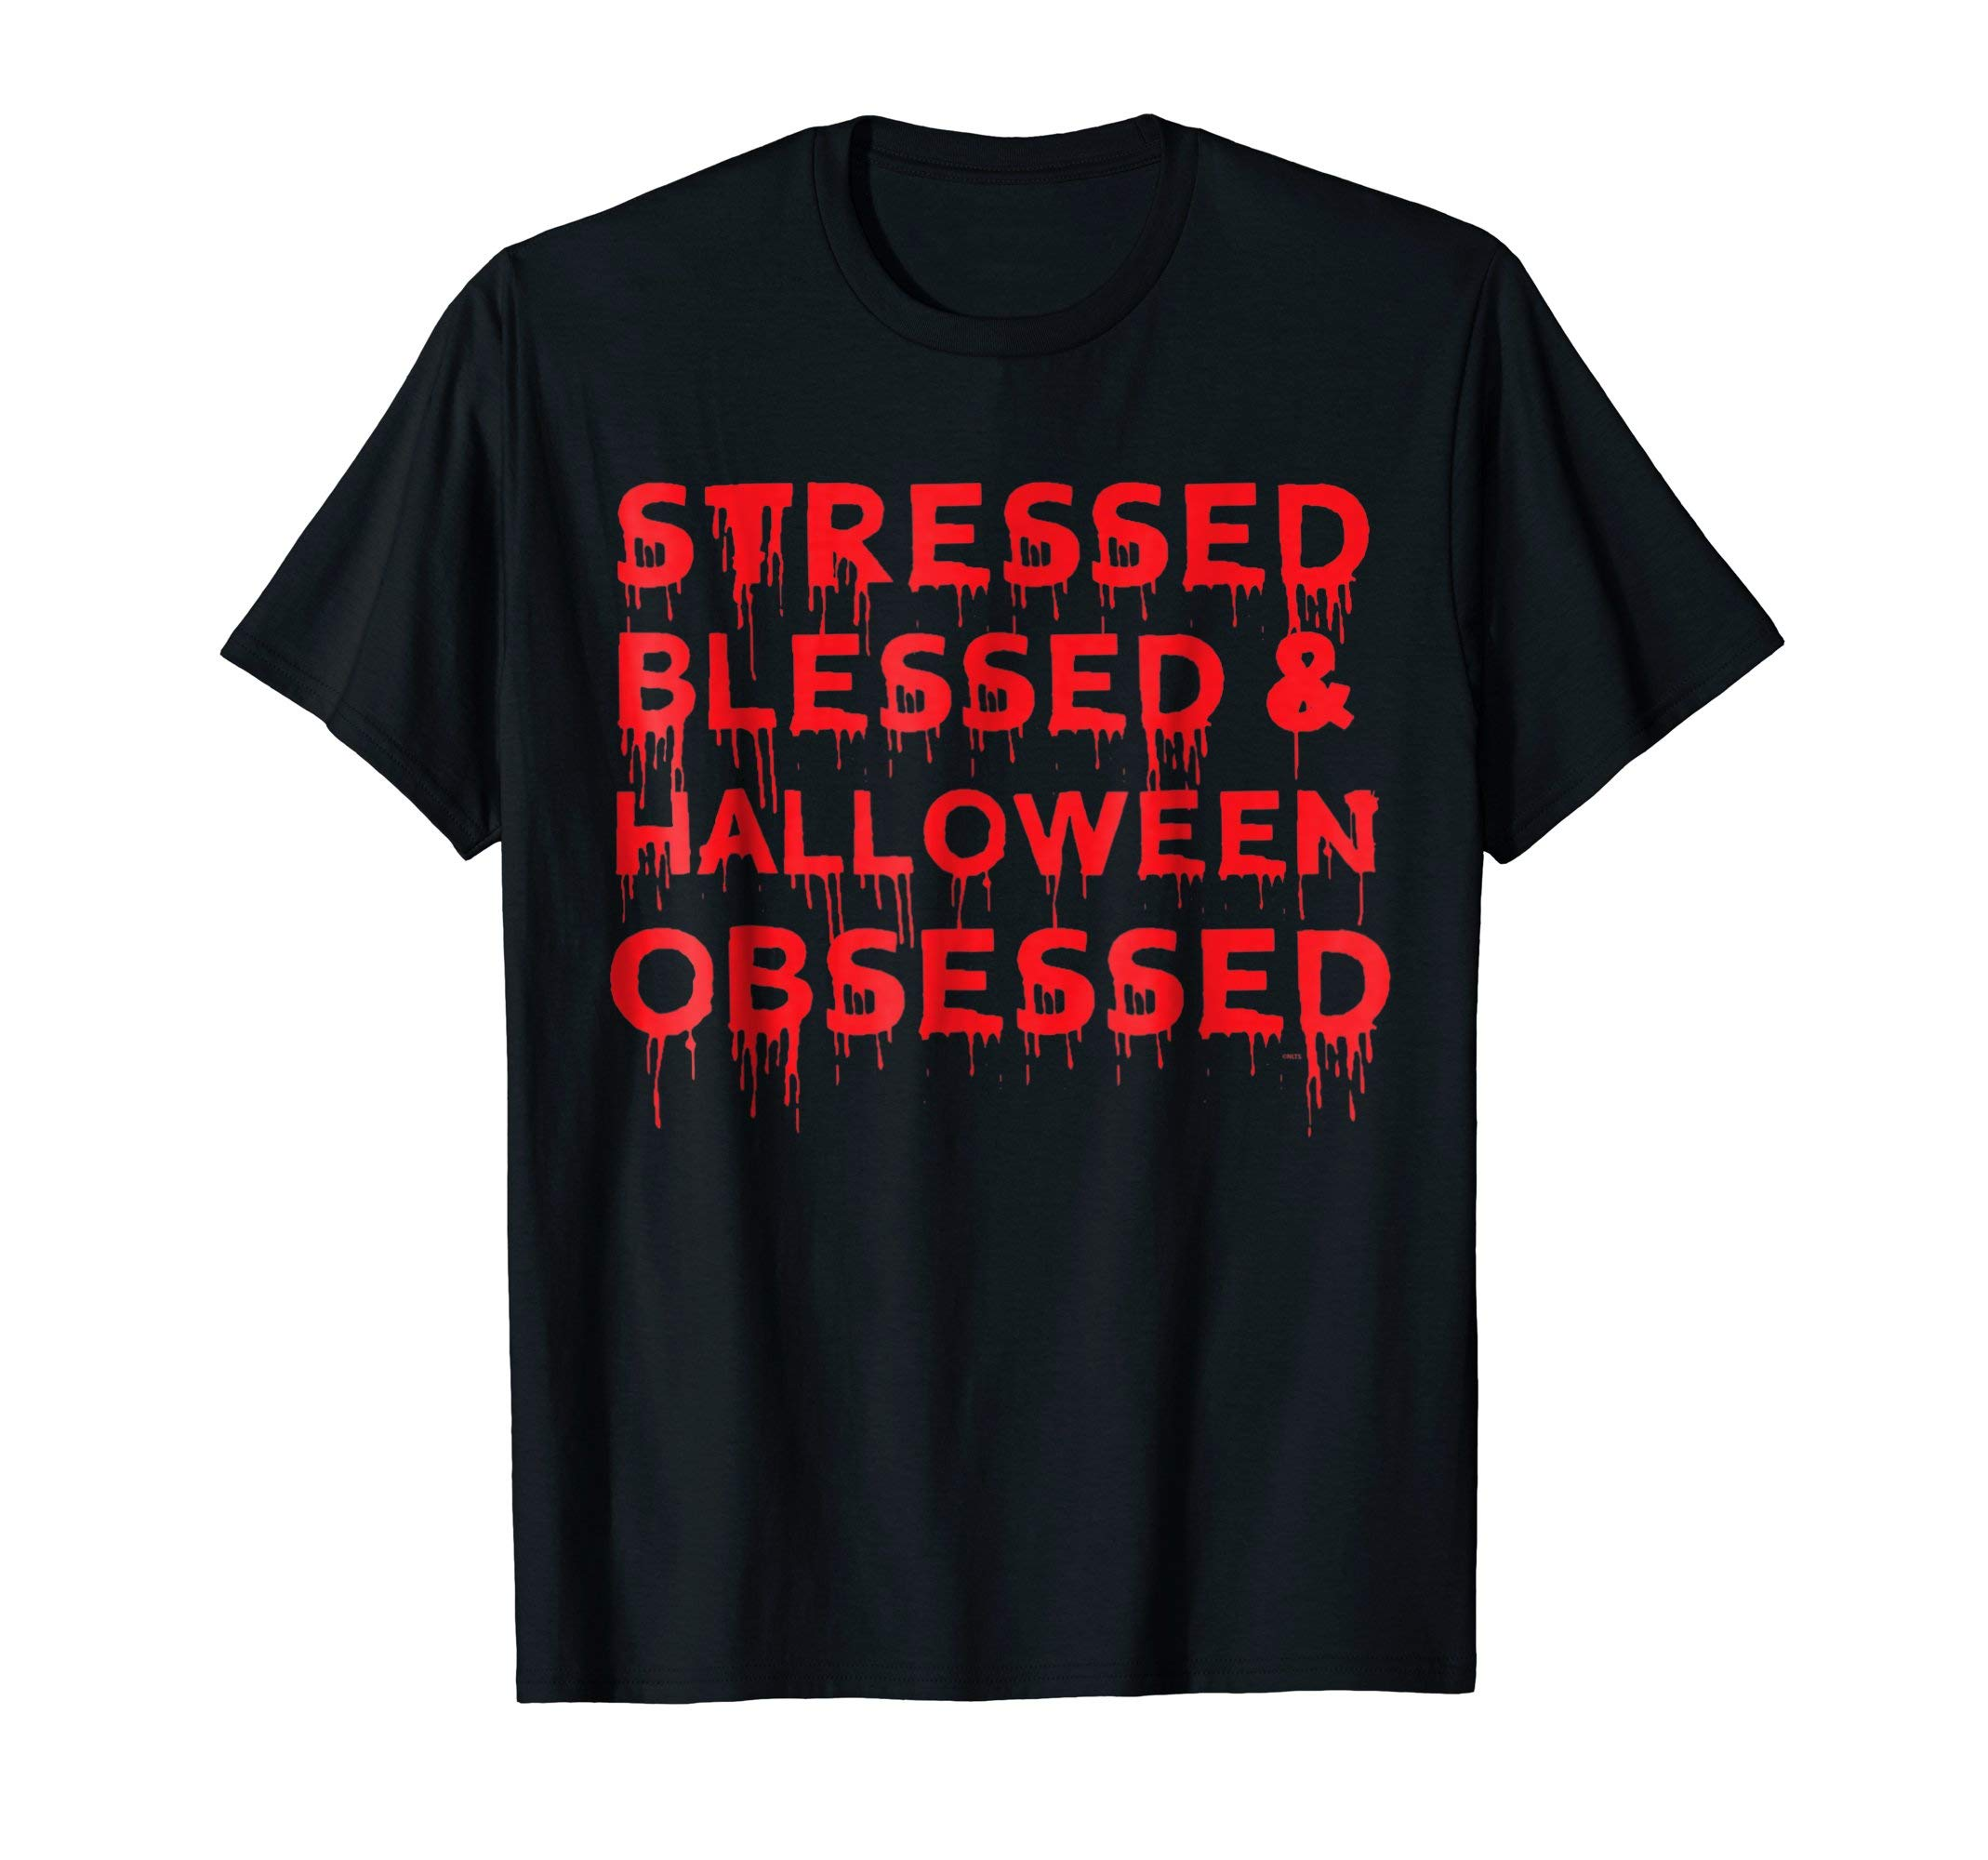 Stressed-Blessed-Halloween-Obsessed-Bloody-Humor-T-Shirt